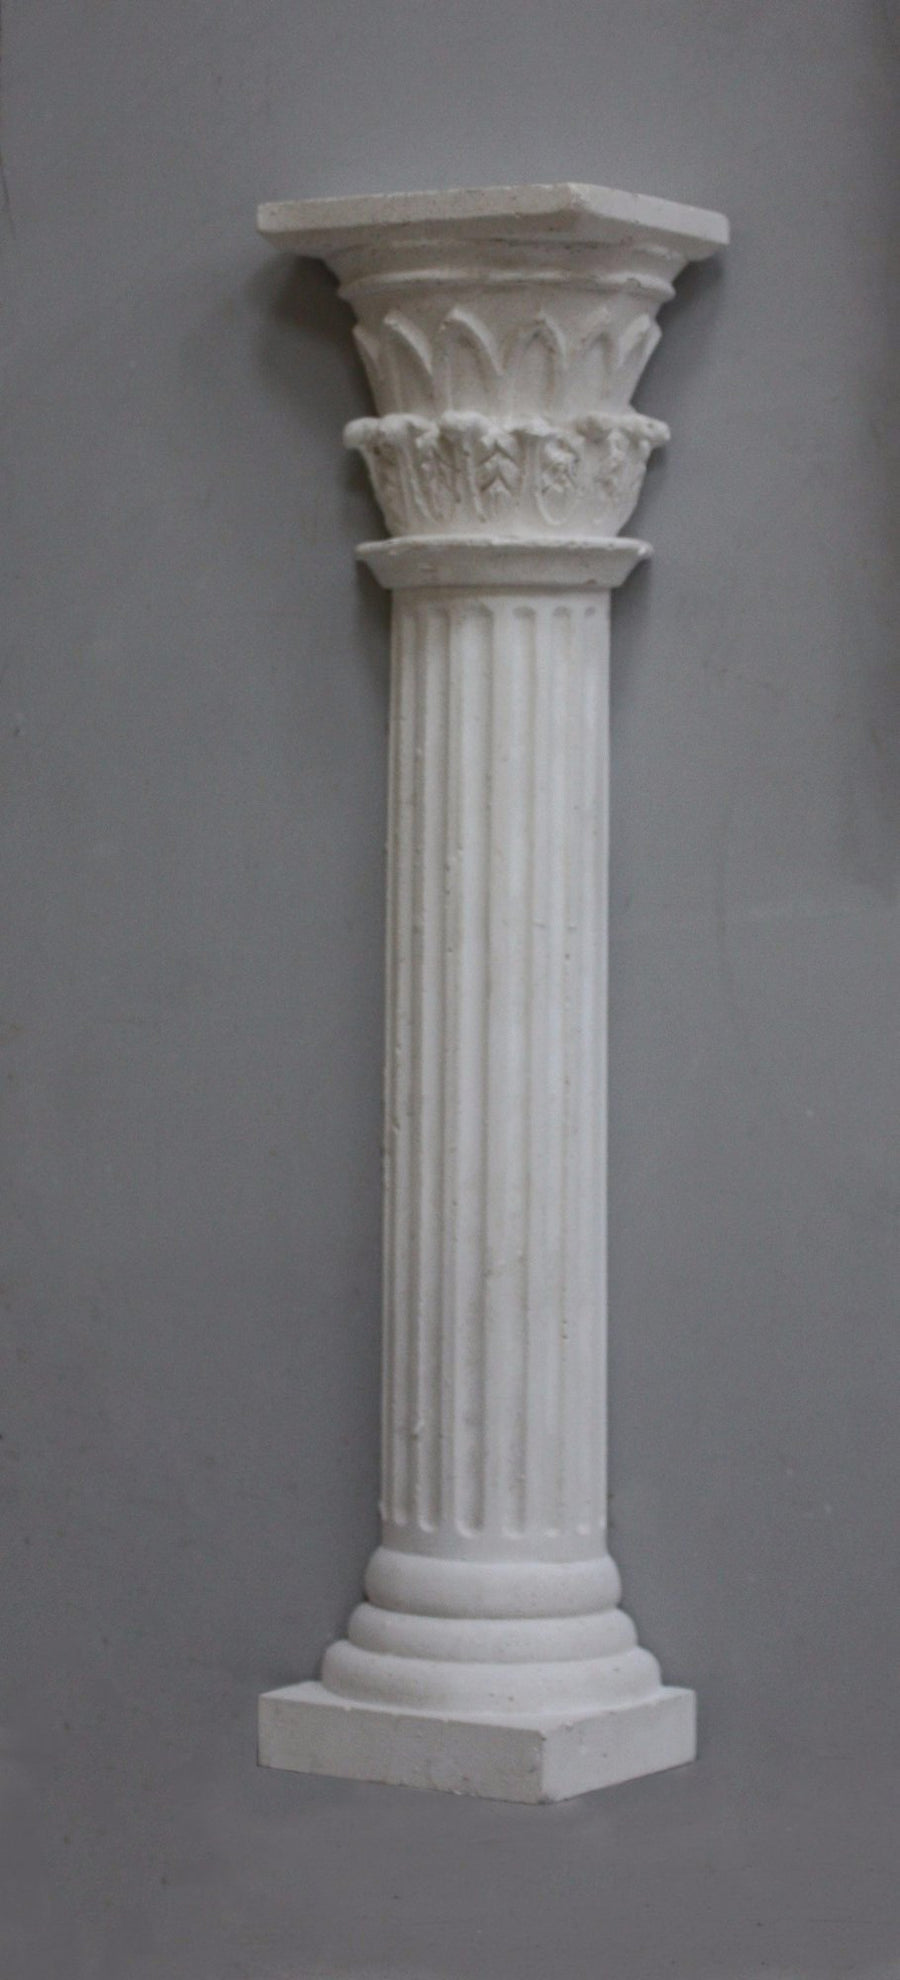 Photo of plaster cast sculpture of Greek half column on a grey background